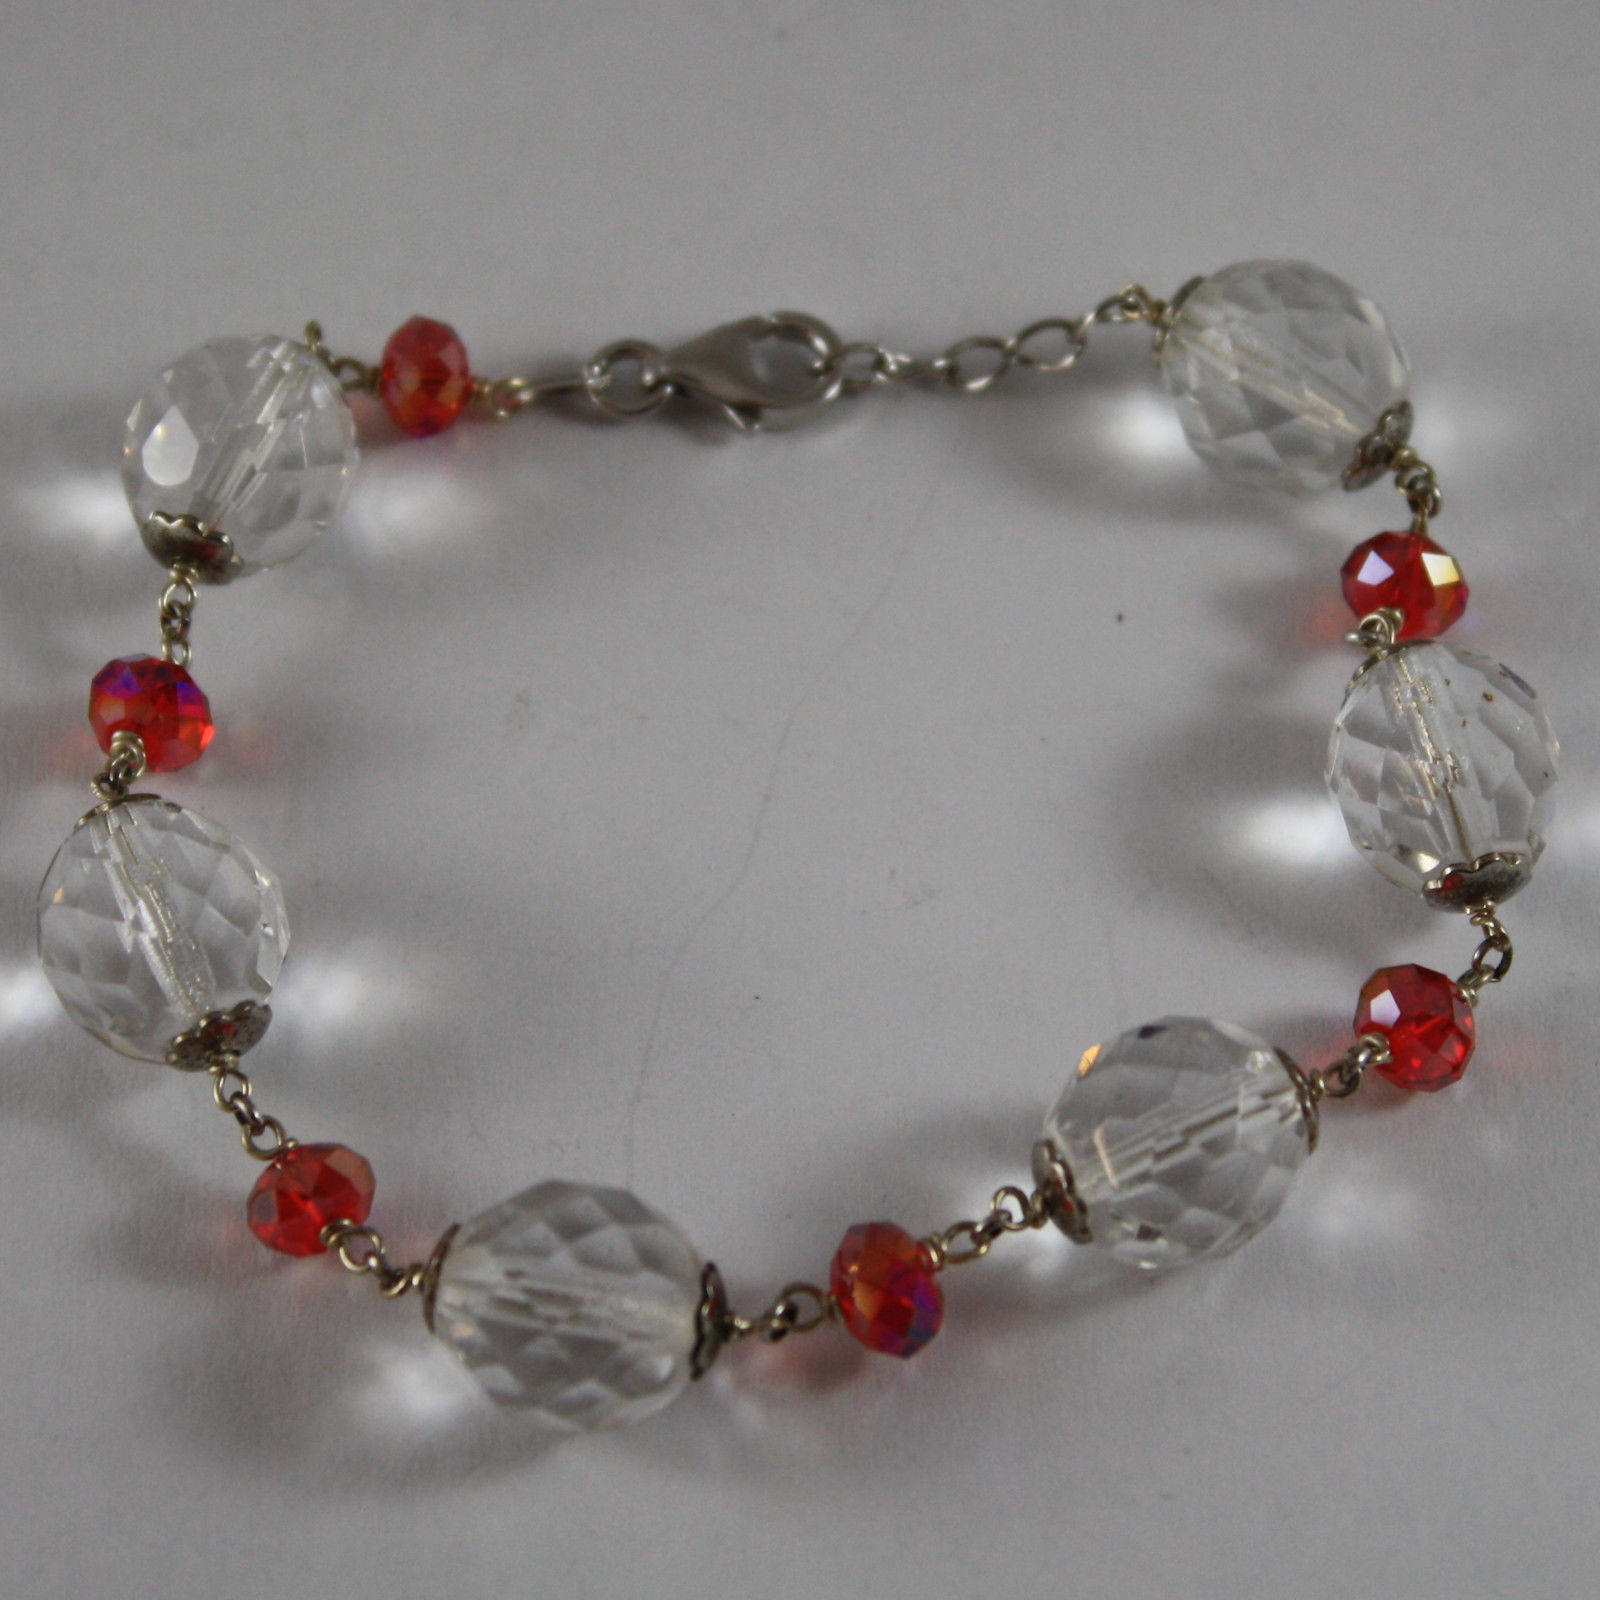 925. RHODIUM SILVER BRACELET WITH RED AND TRANSPARENT CRYSTALS